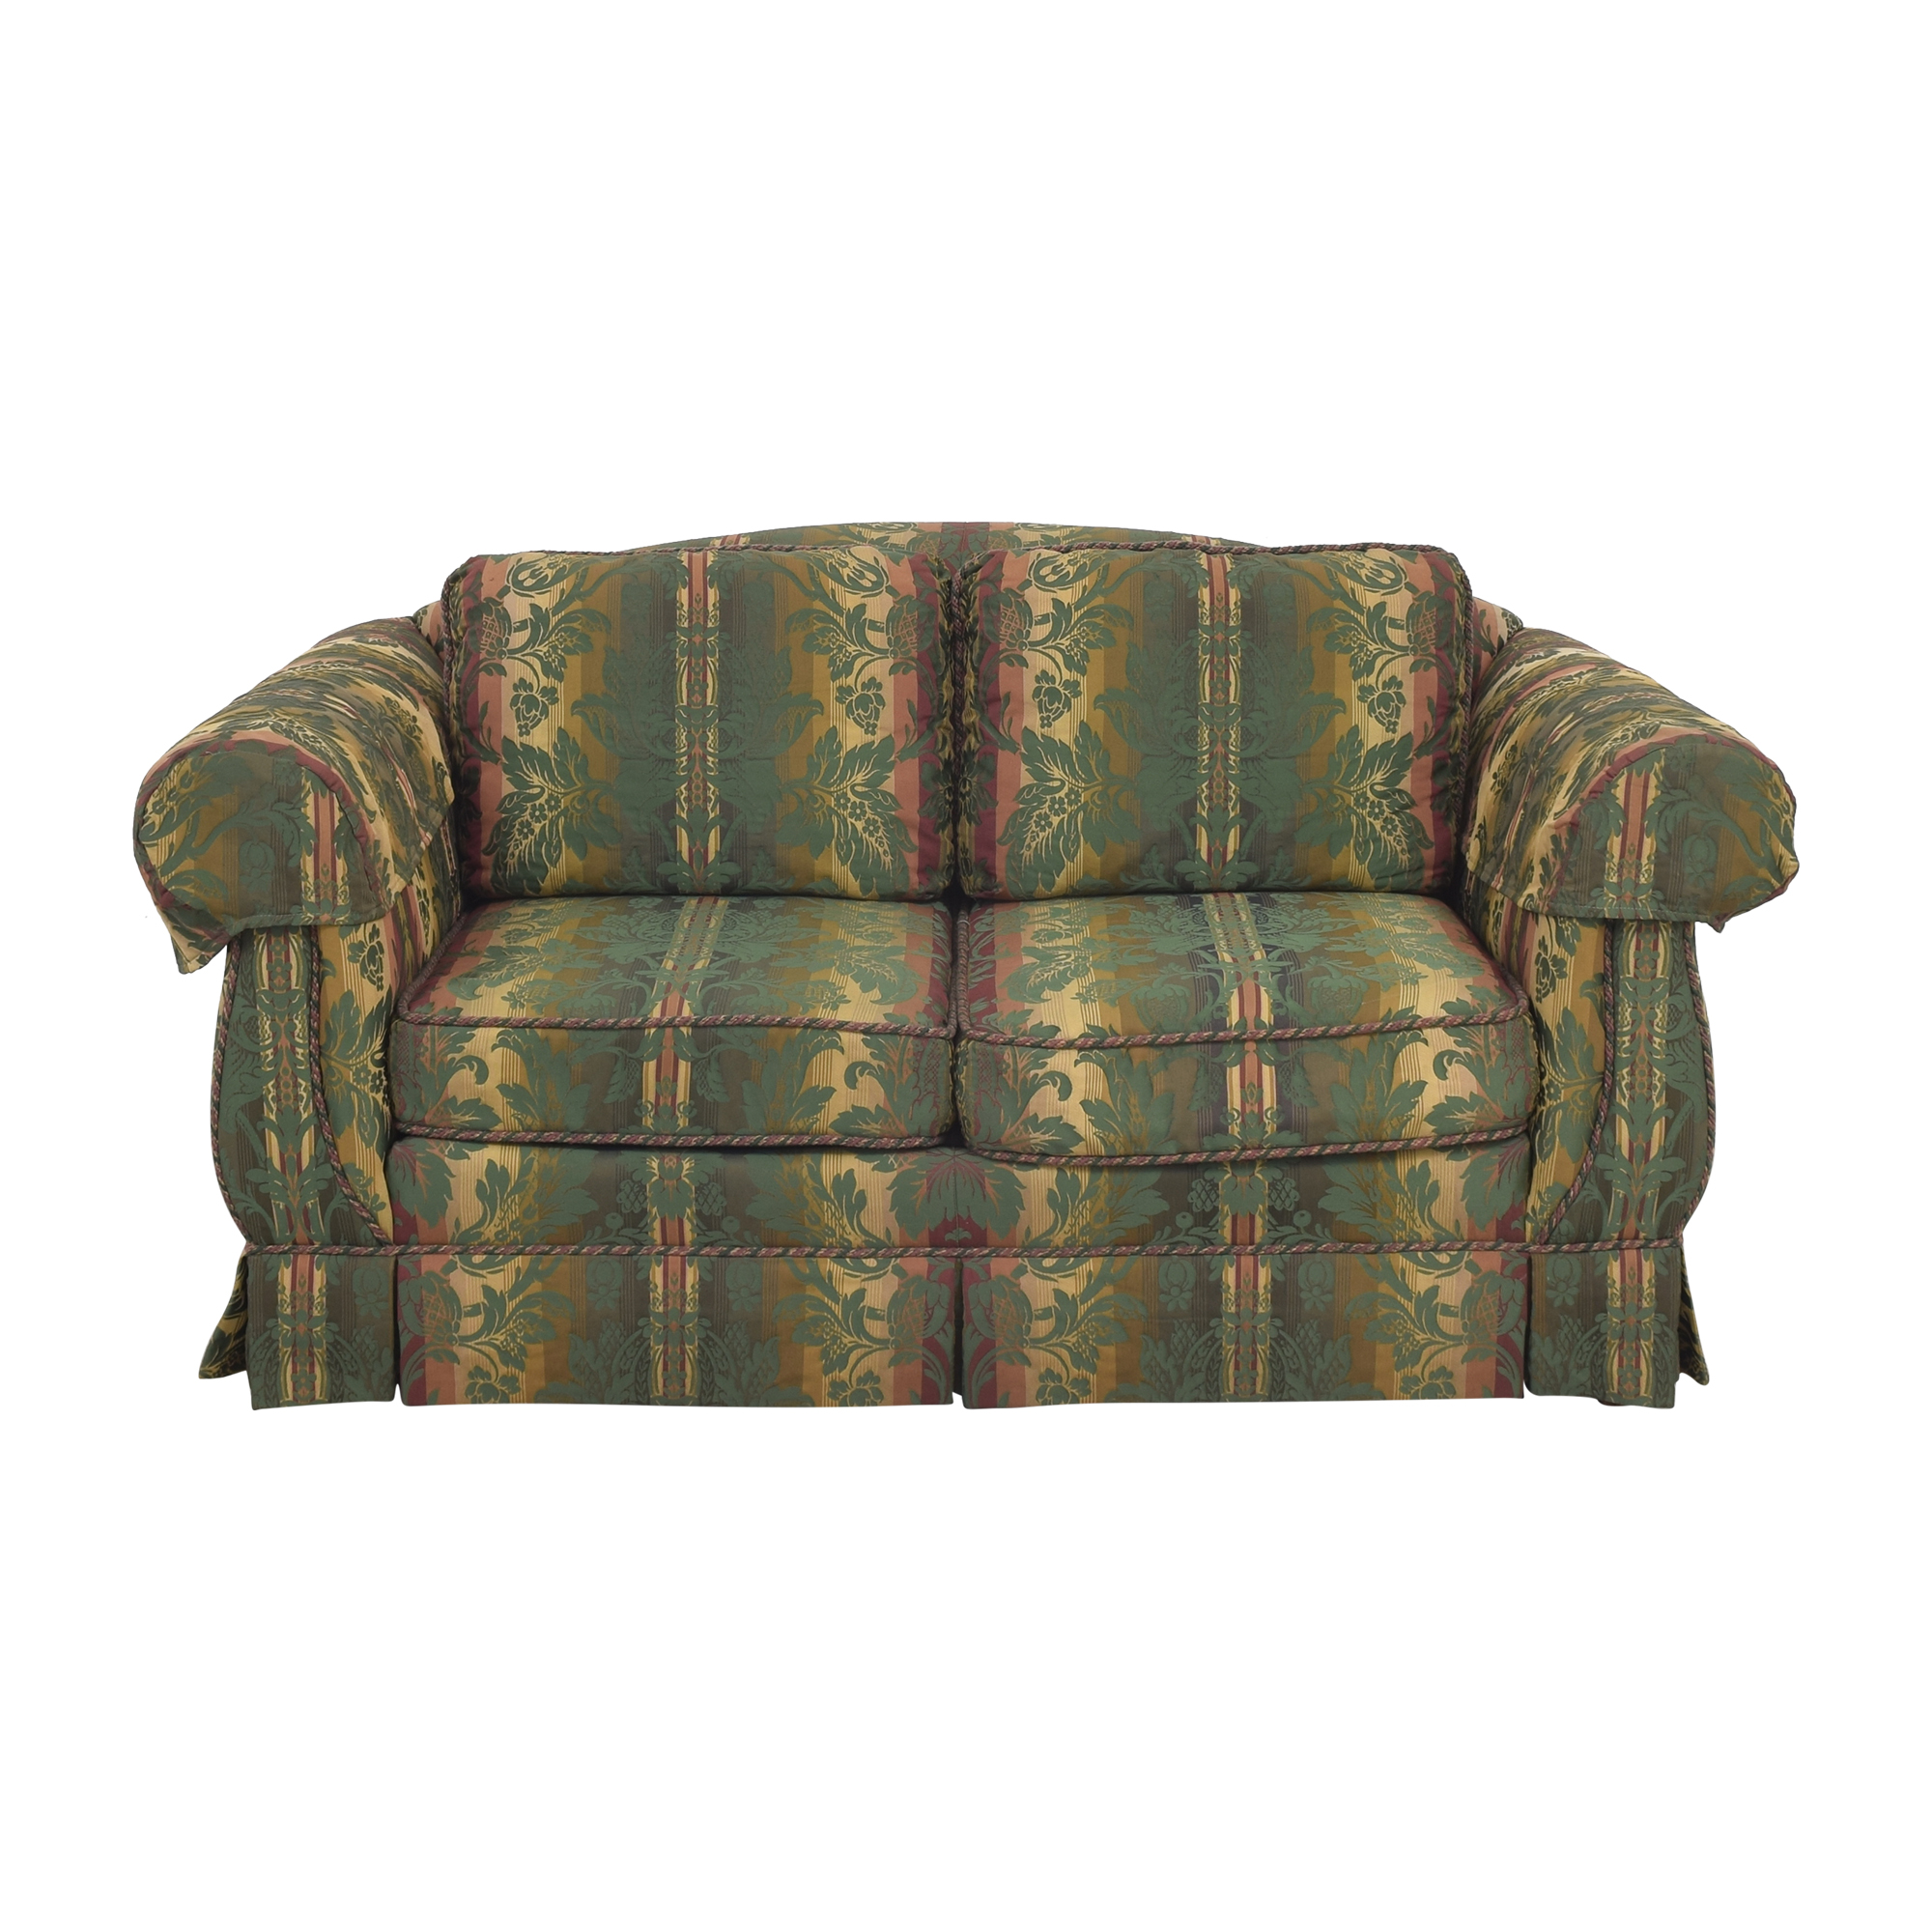 Thomasville Thomasville Patterned Two Cushion Sofa dimensions